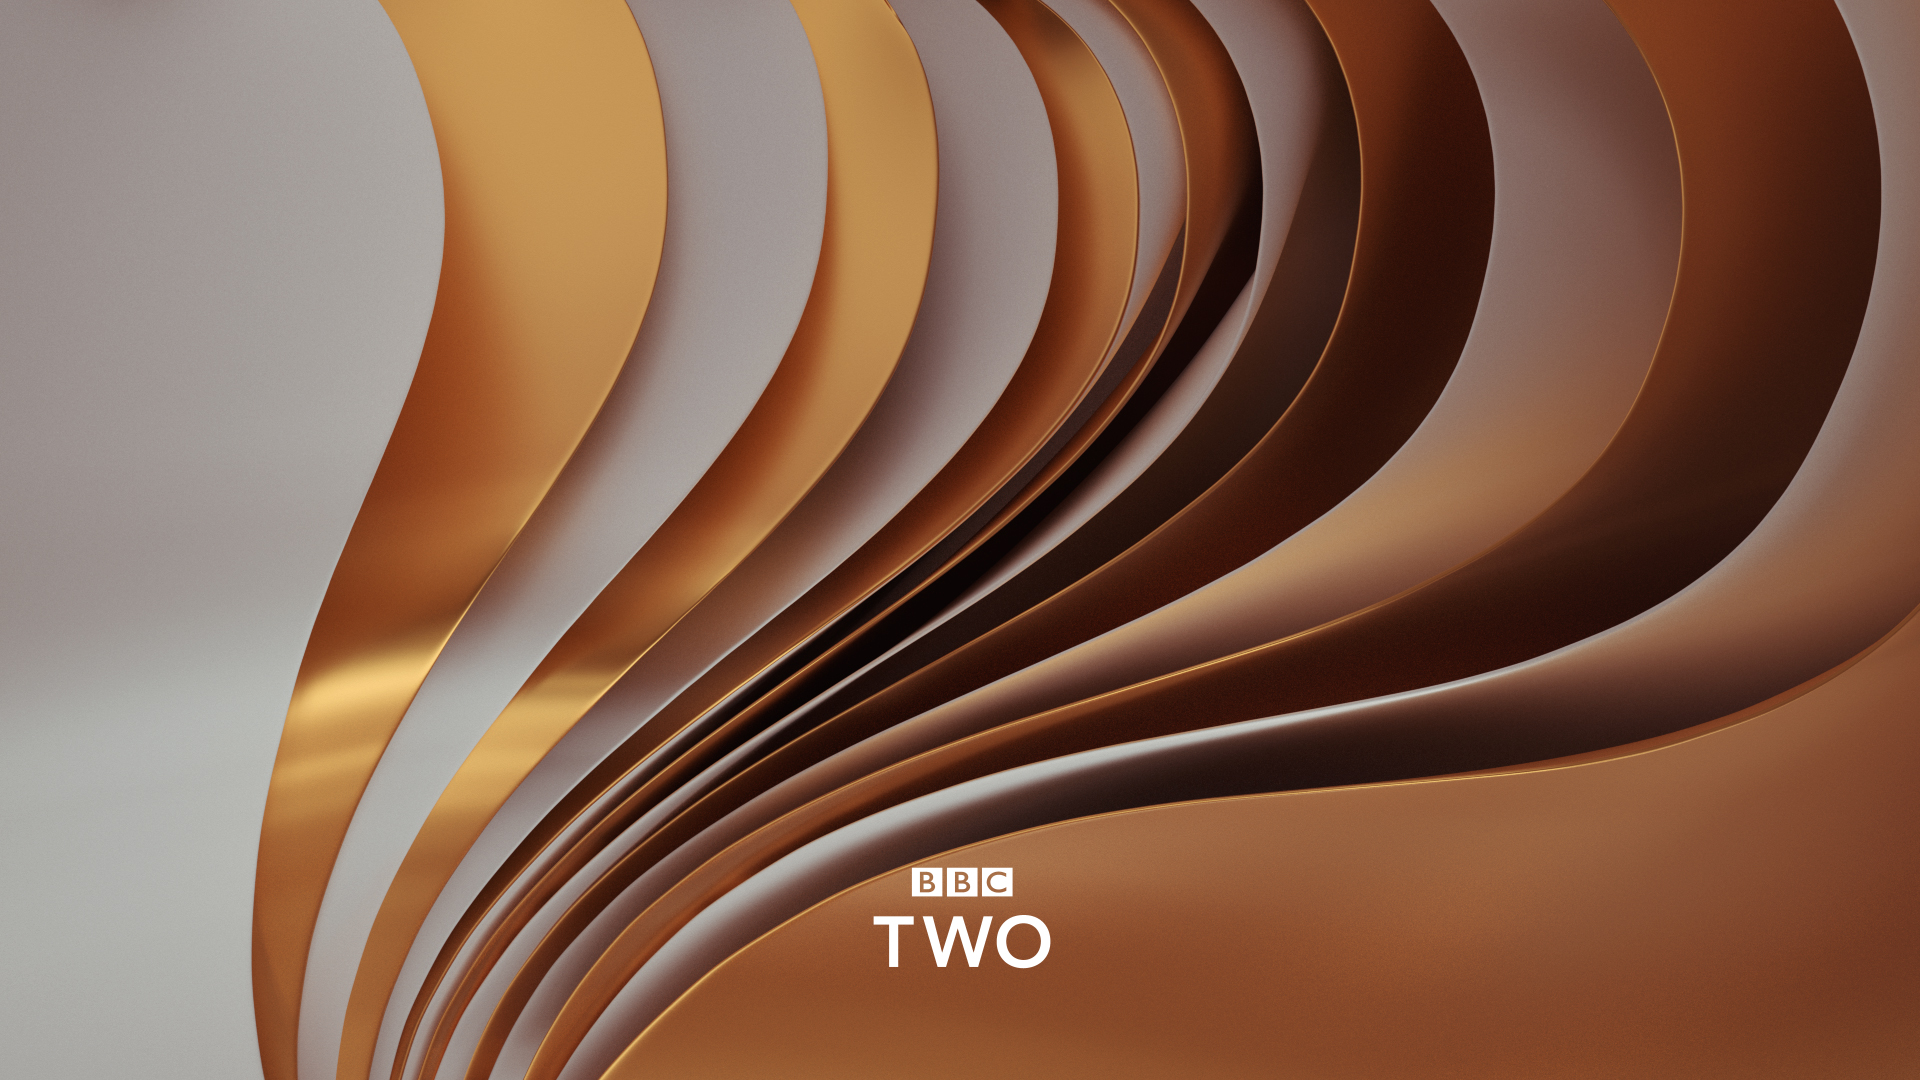 BBC_two_07